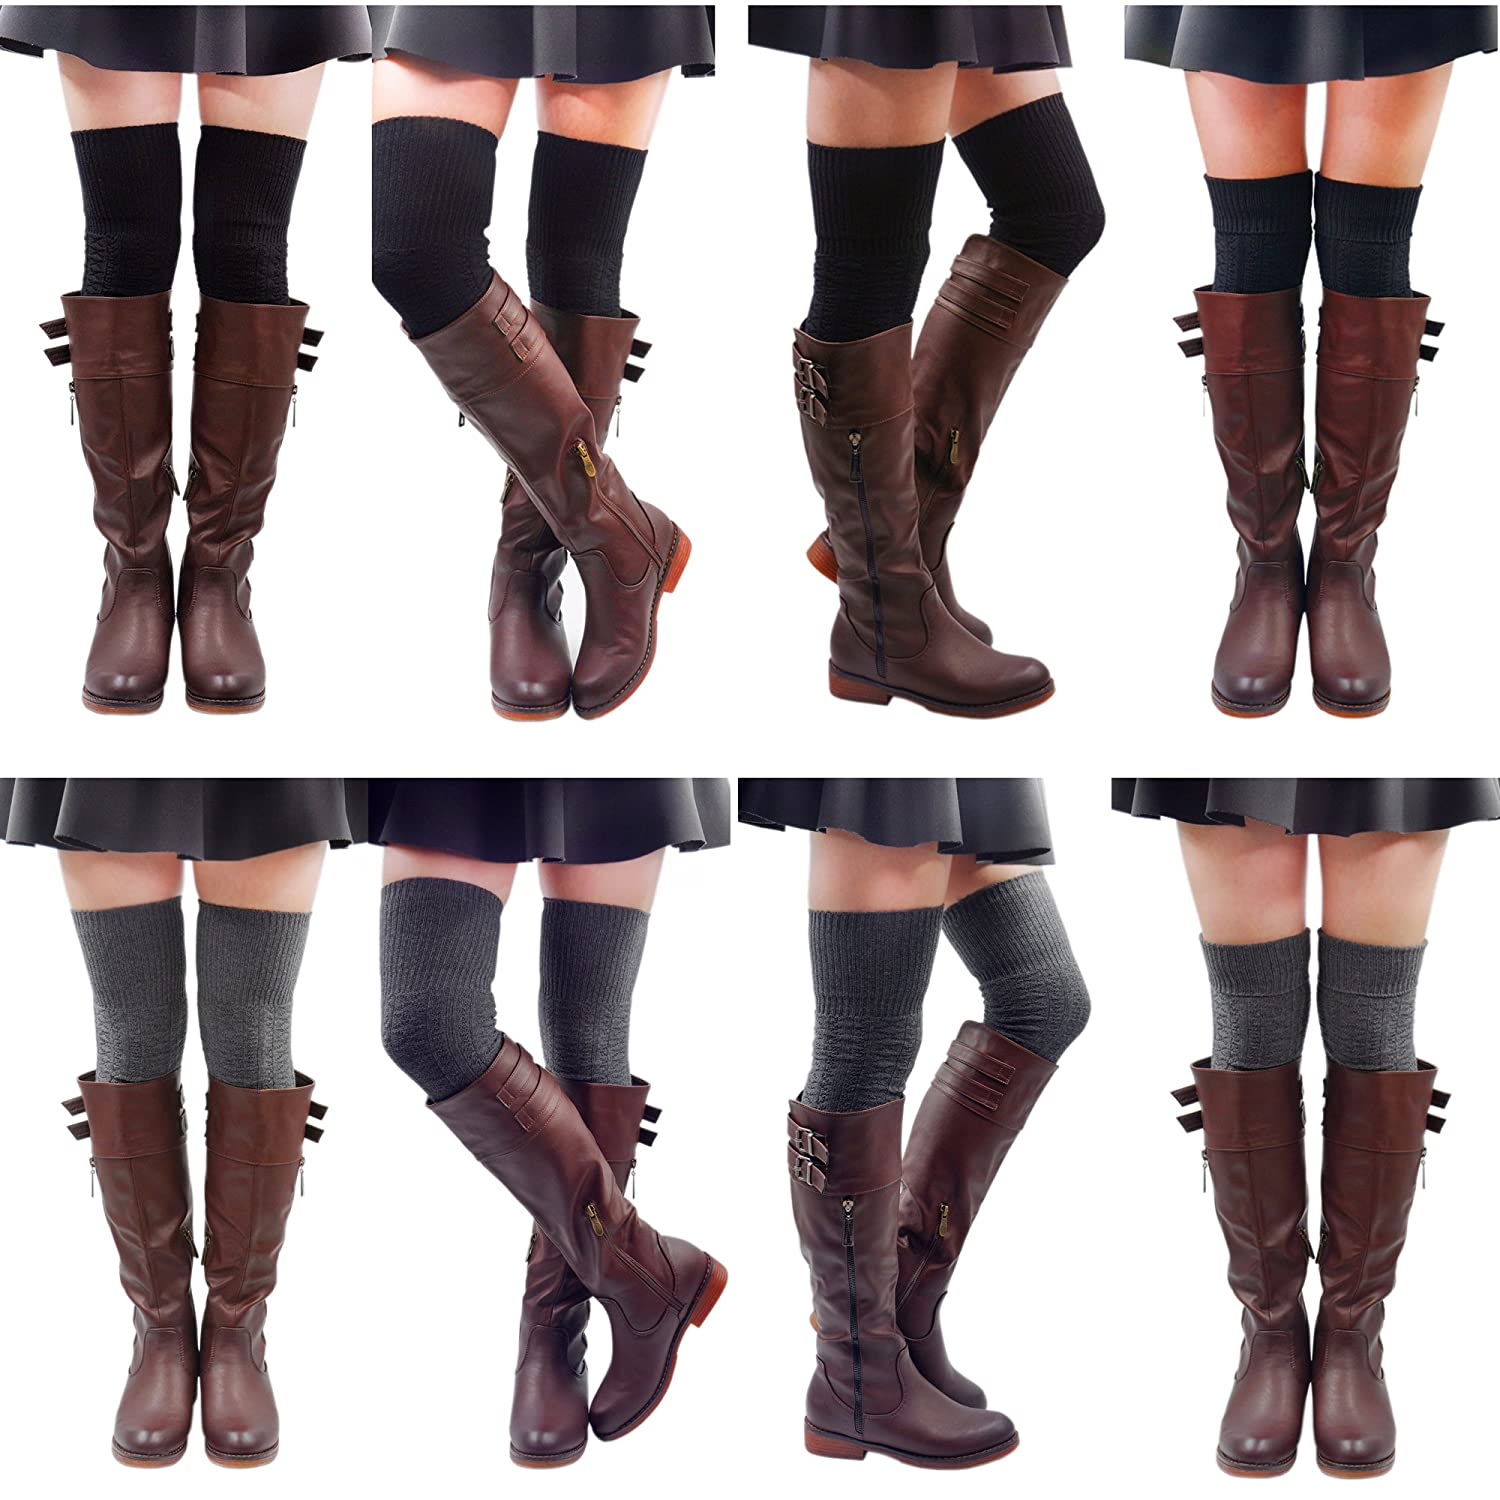 Kayhoma Extra Long Cotton Thigh High Socks Over the Knee High Boot Stockings Cotton Leg Warmers